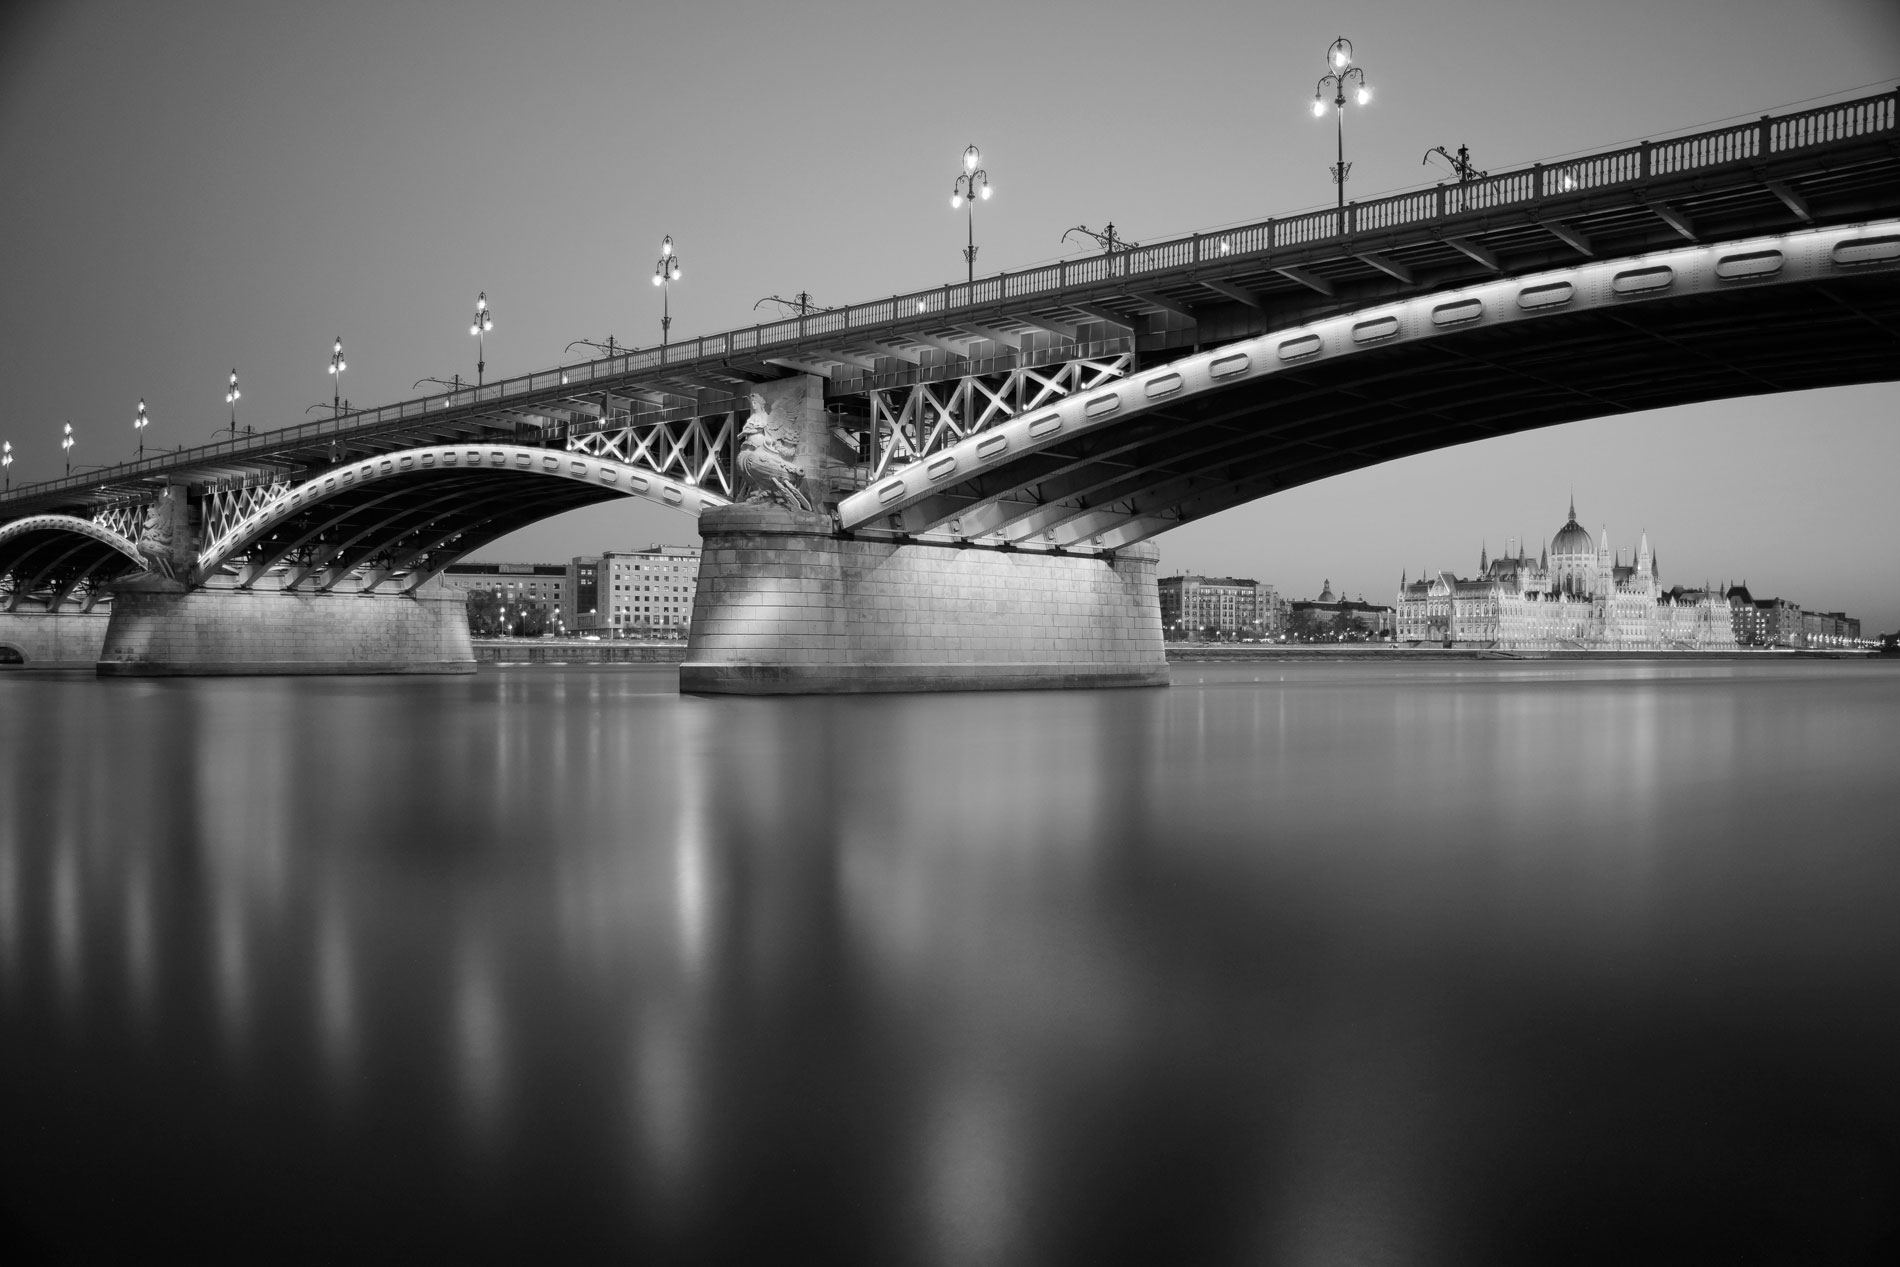 budapest_atthary_photography_bridge_24